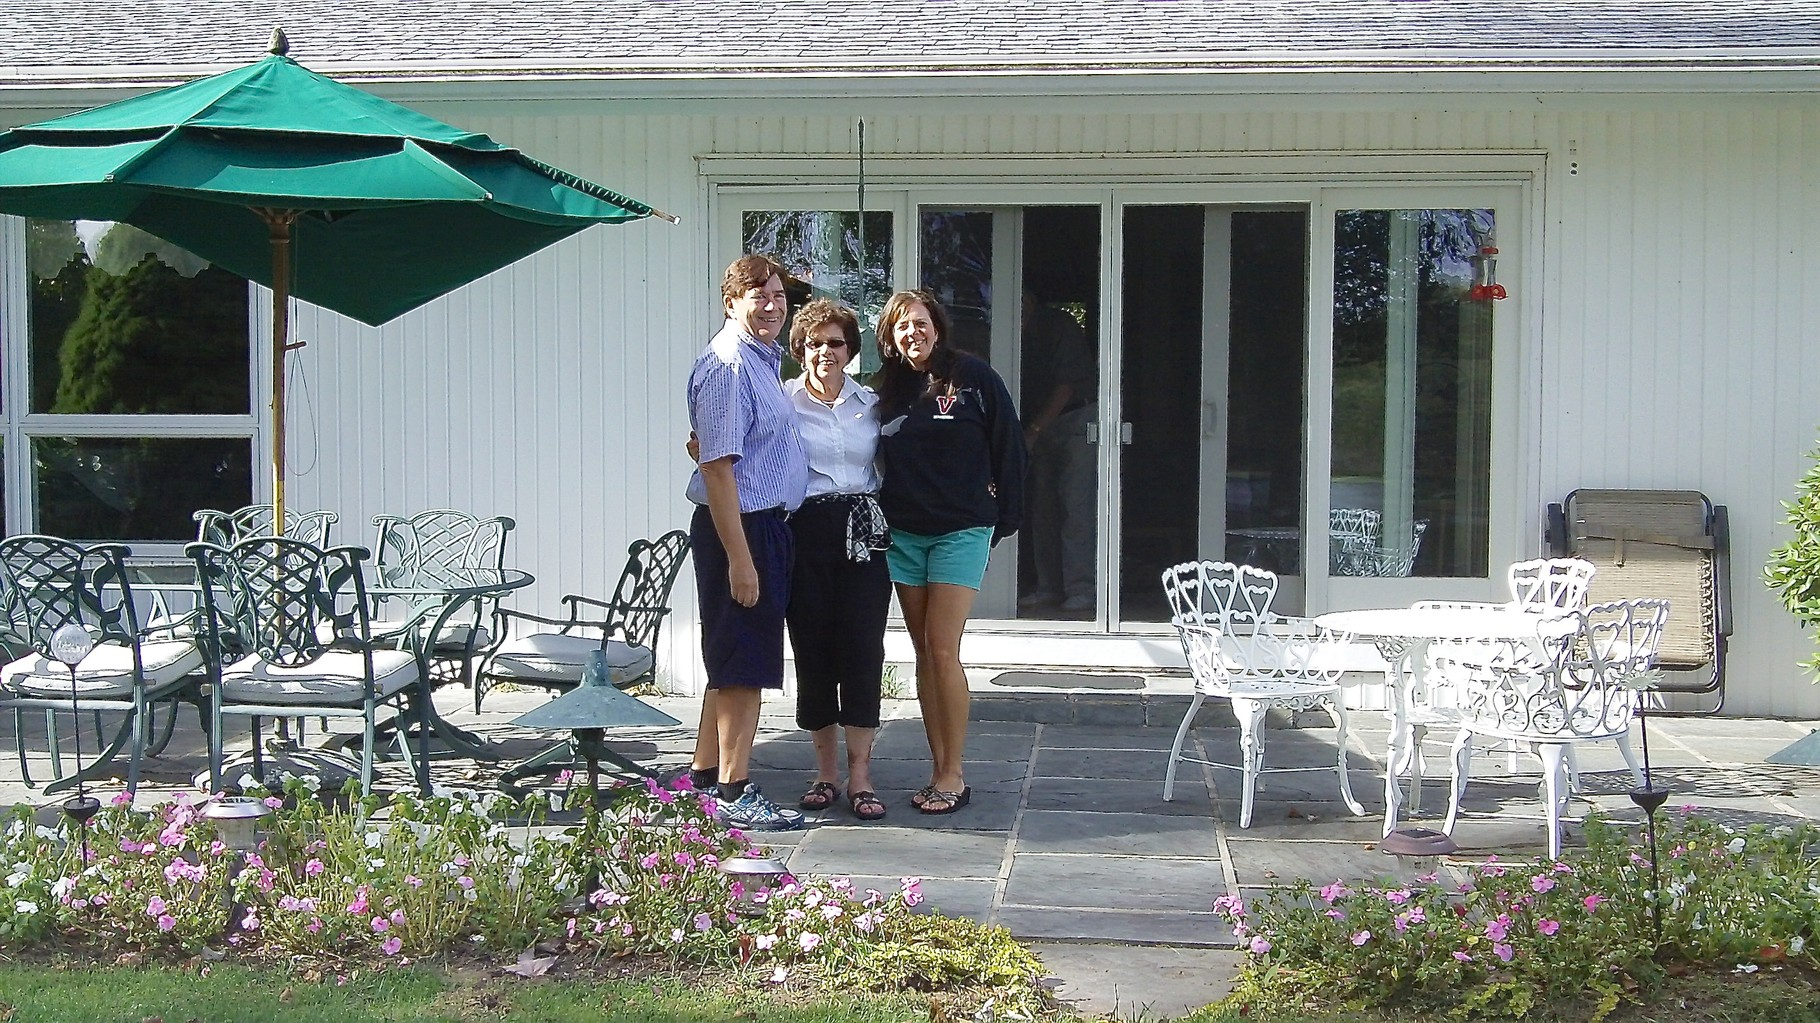 John, Kathy, & Kathy's daughter Cindy at the back of Kathy's home in Connecticut